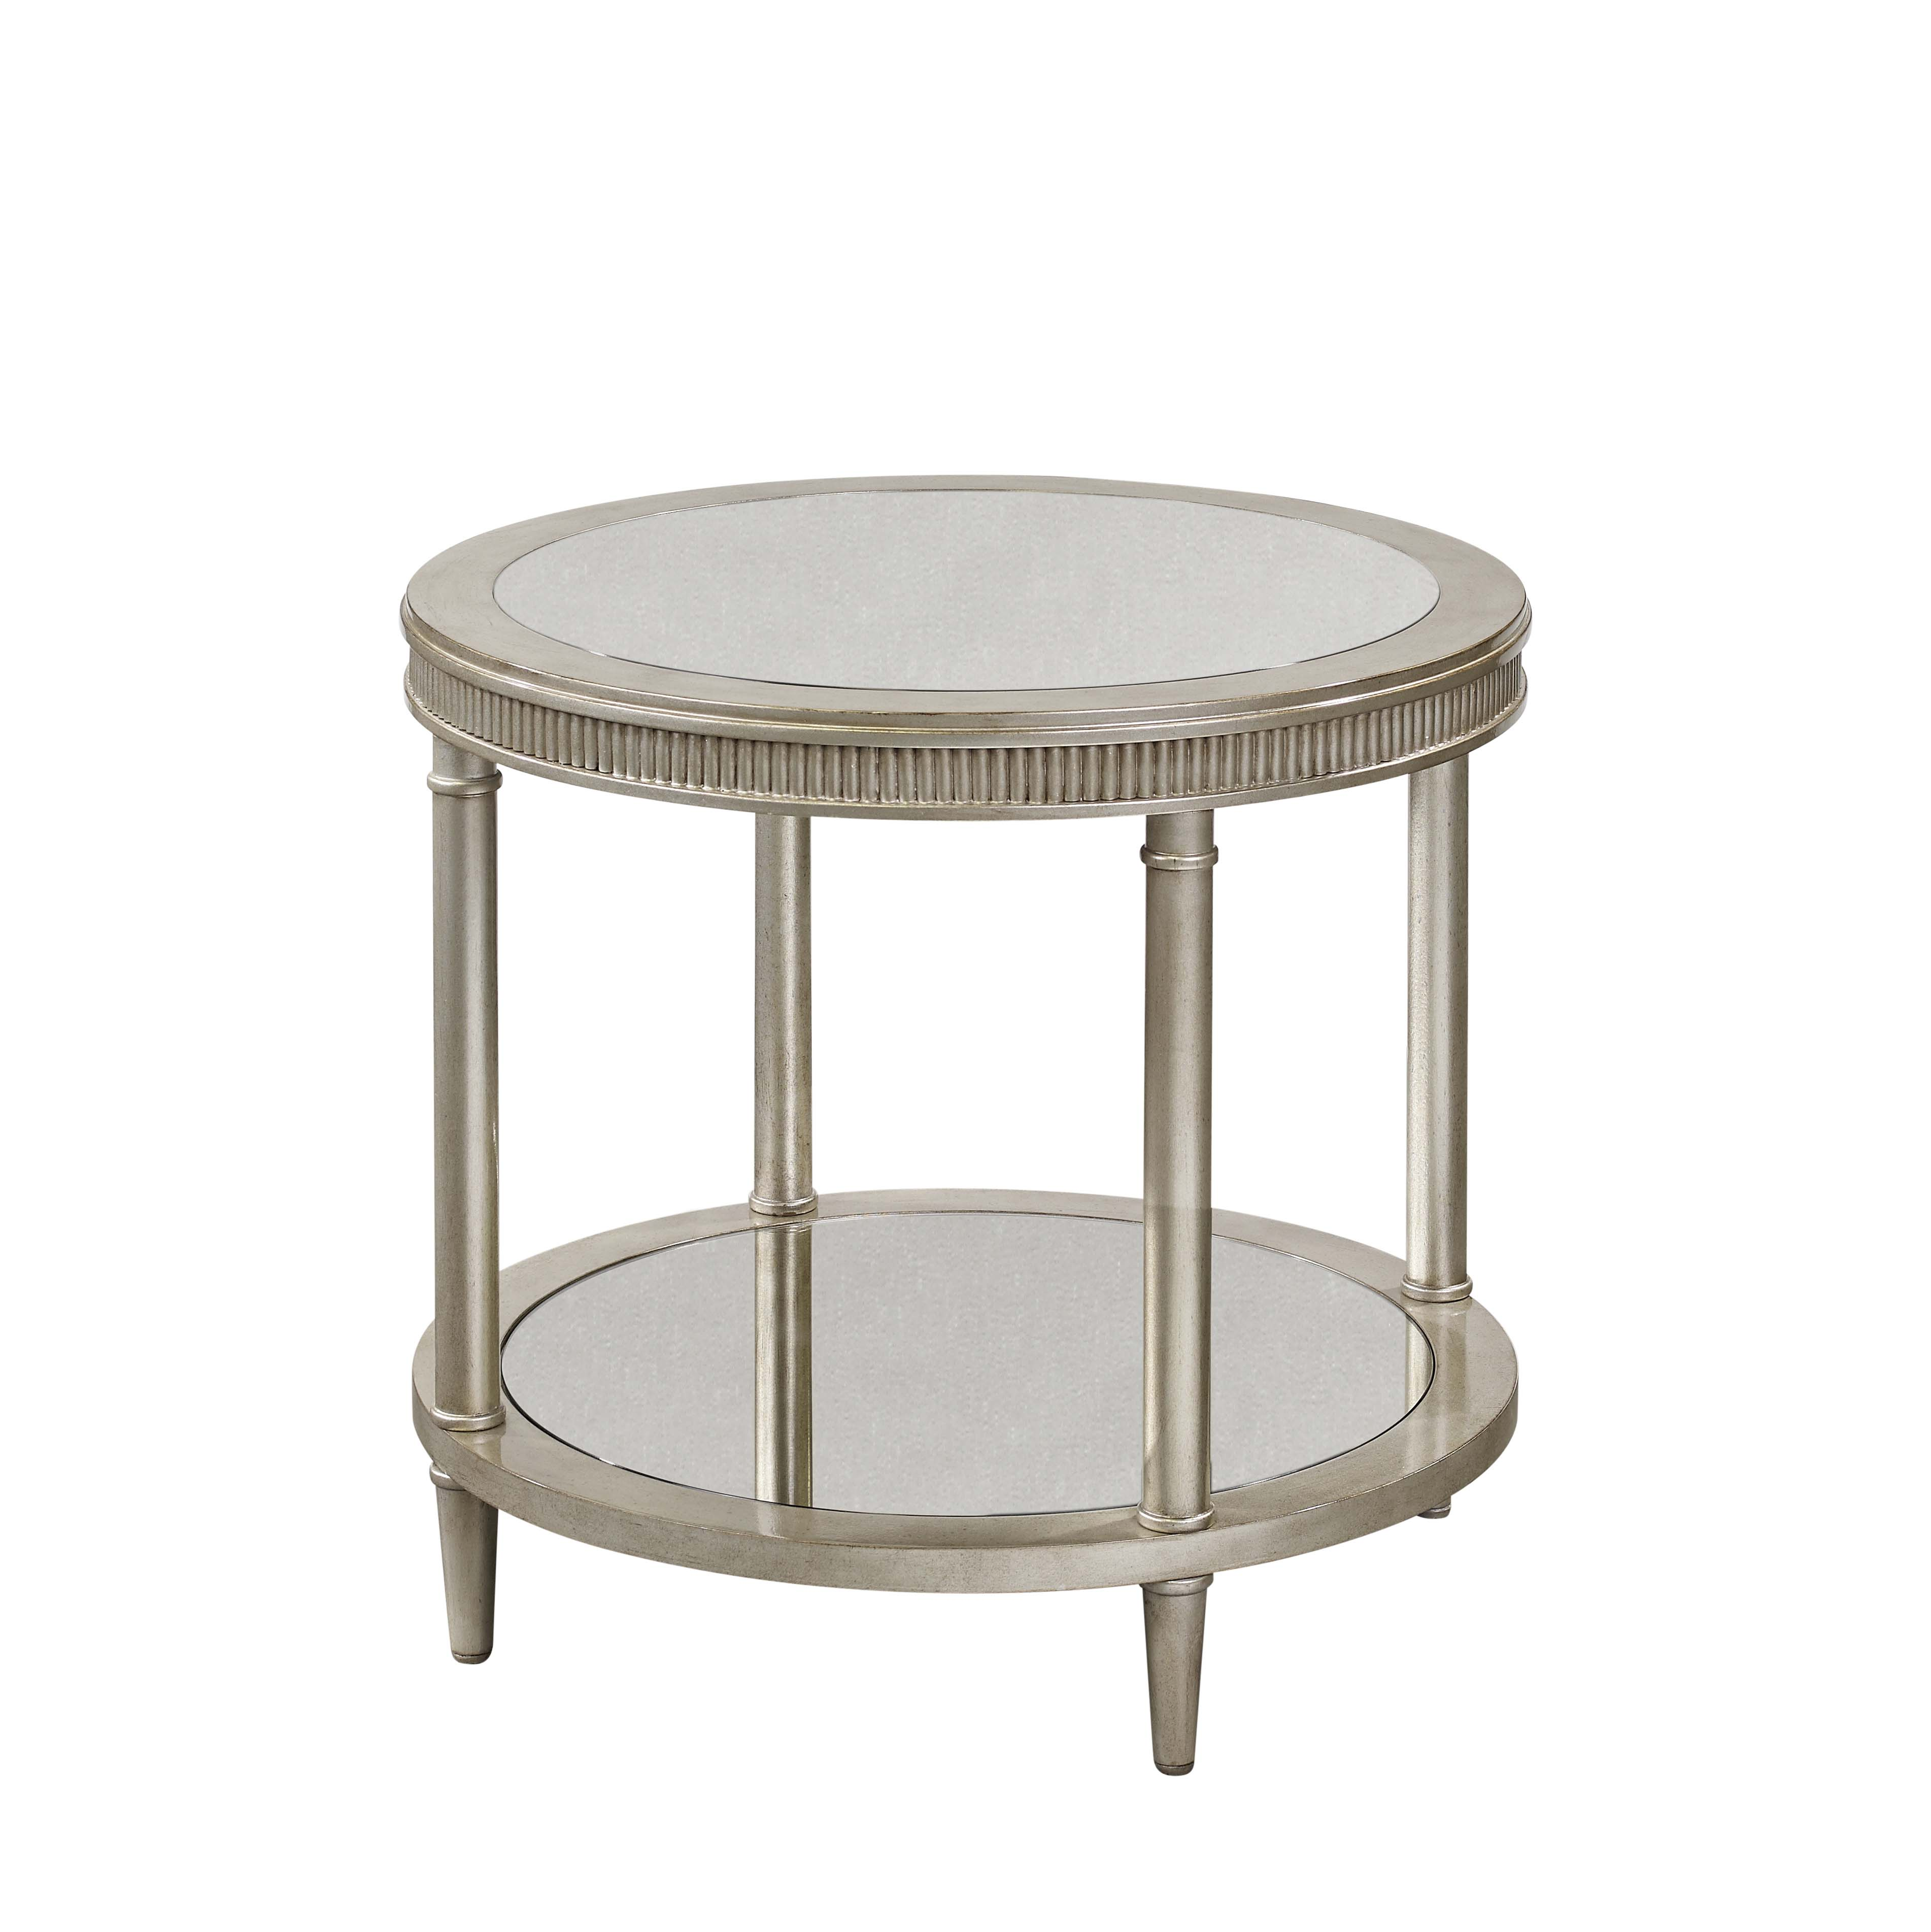 Hollywood Glam Vanesta Round End Table by Bassett Mirror at Alison Craig Home Furnishings